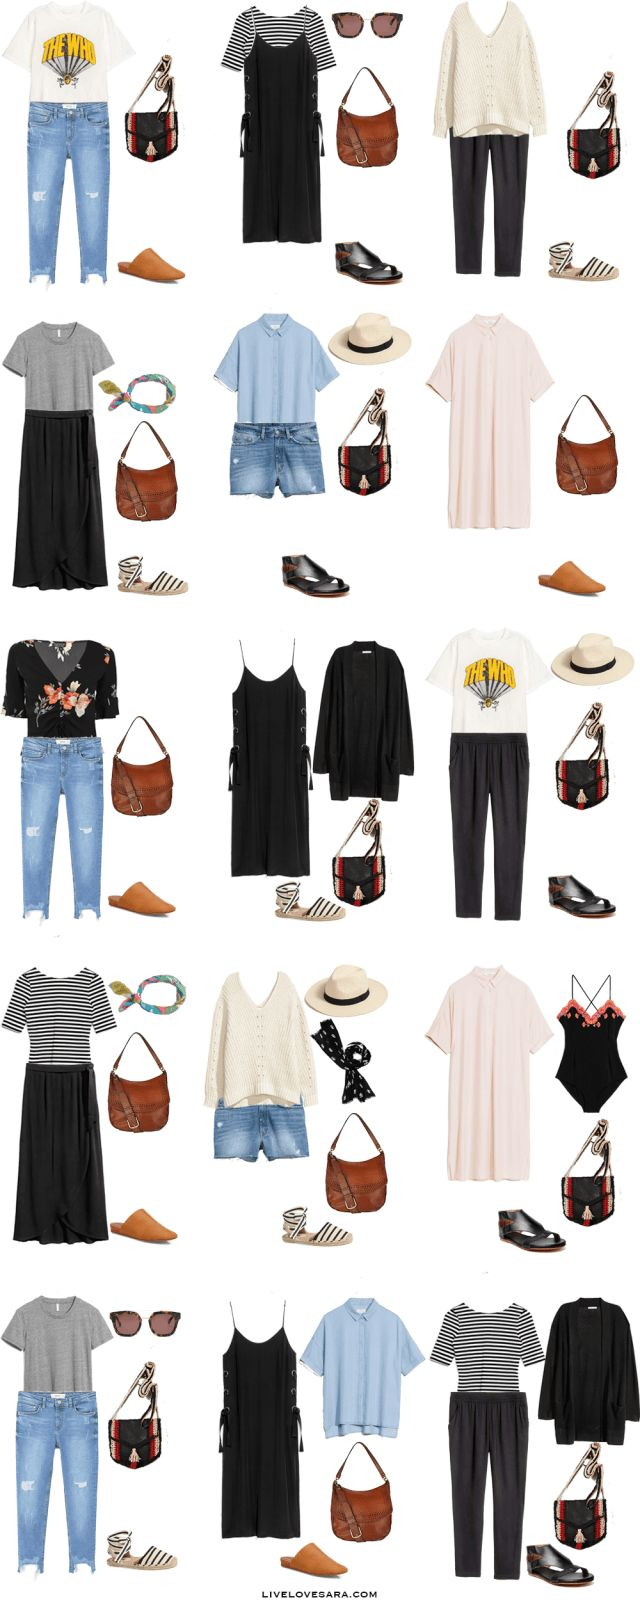 What to Pack for Greece Outfit Options 1-15 Packing Light List